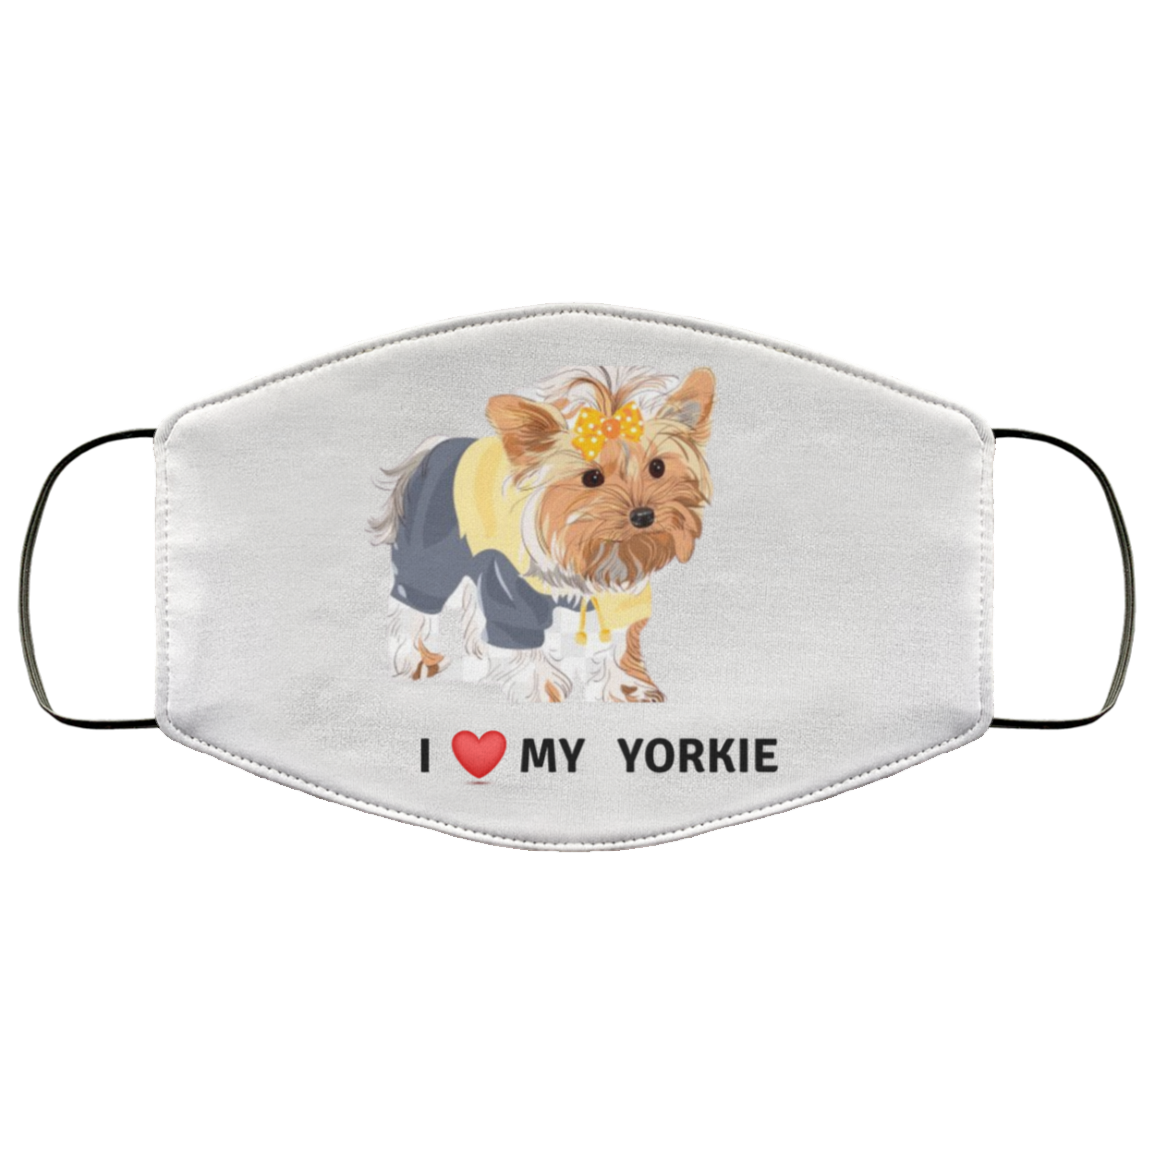 I Love my Yorkie Face Mask